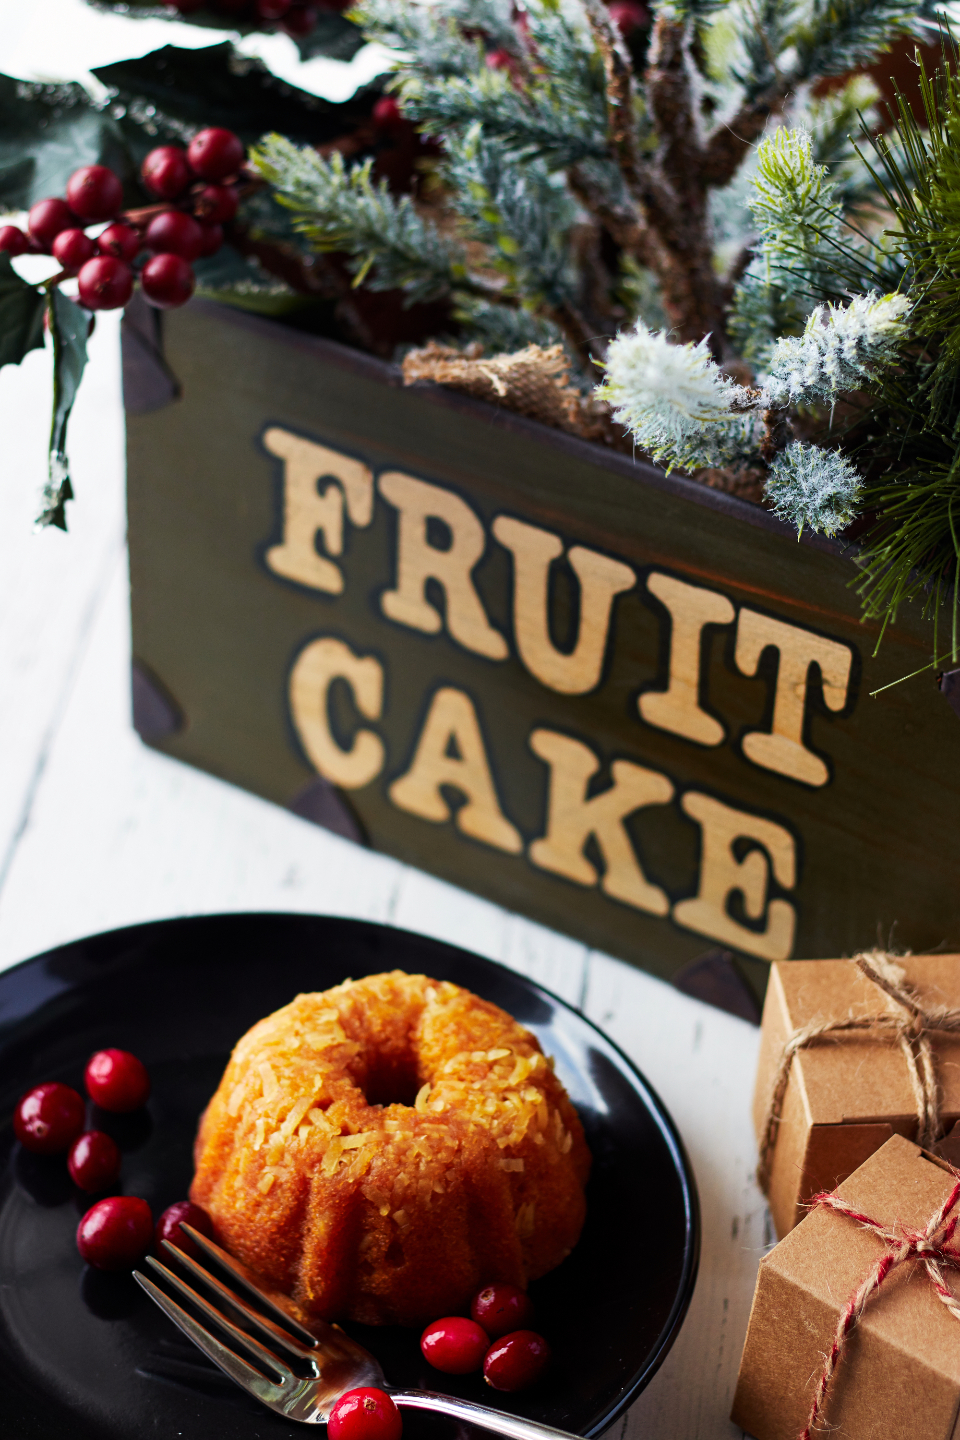 fruit cake christmas bakery berry cranberry gift food holiday festive fork plate xmas sweet dessert